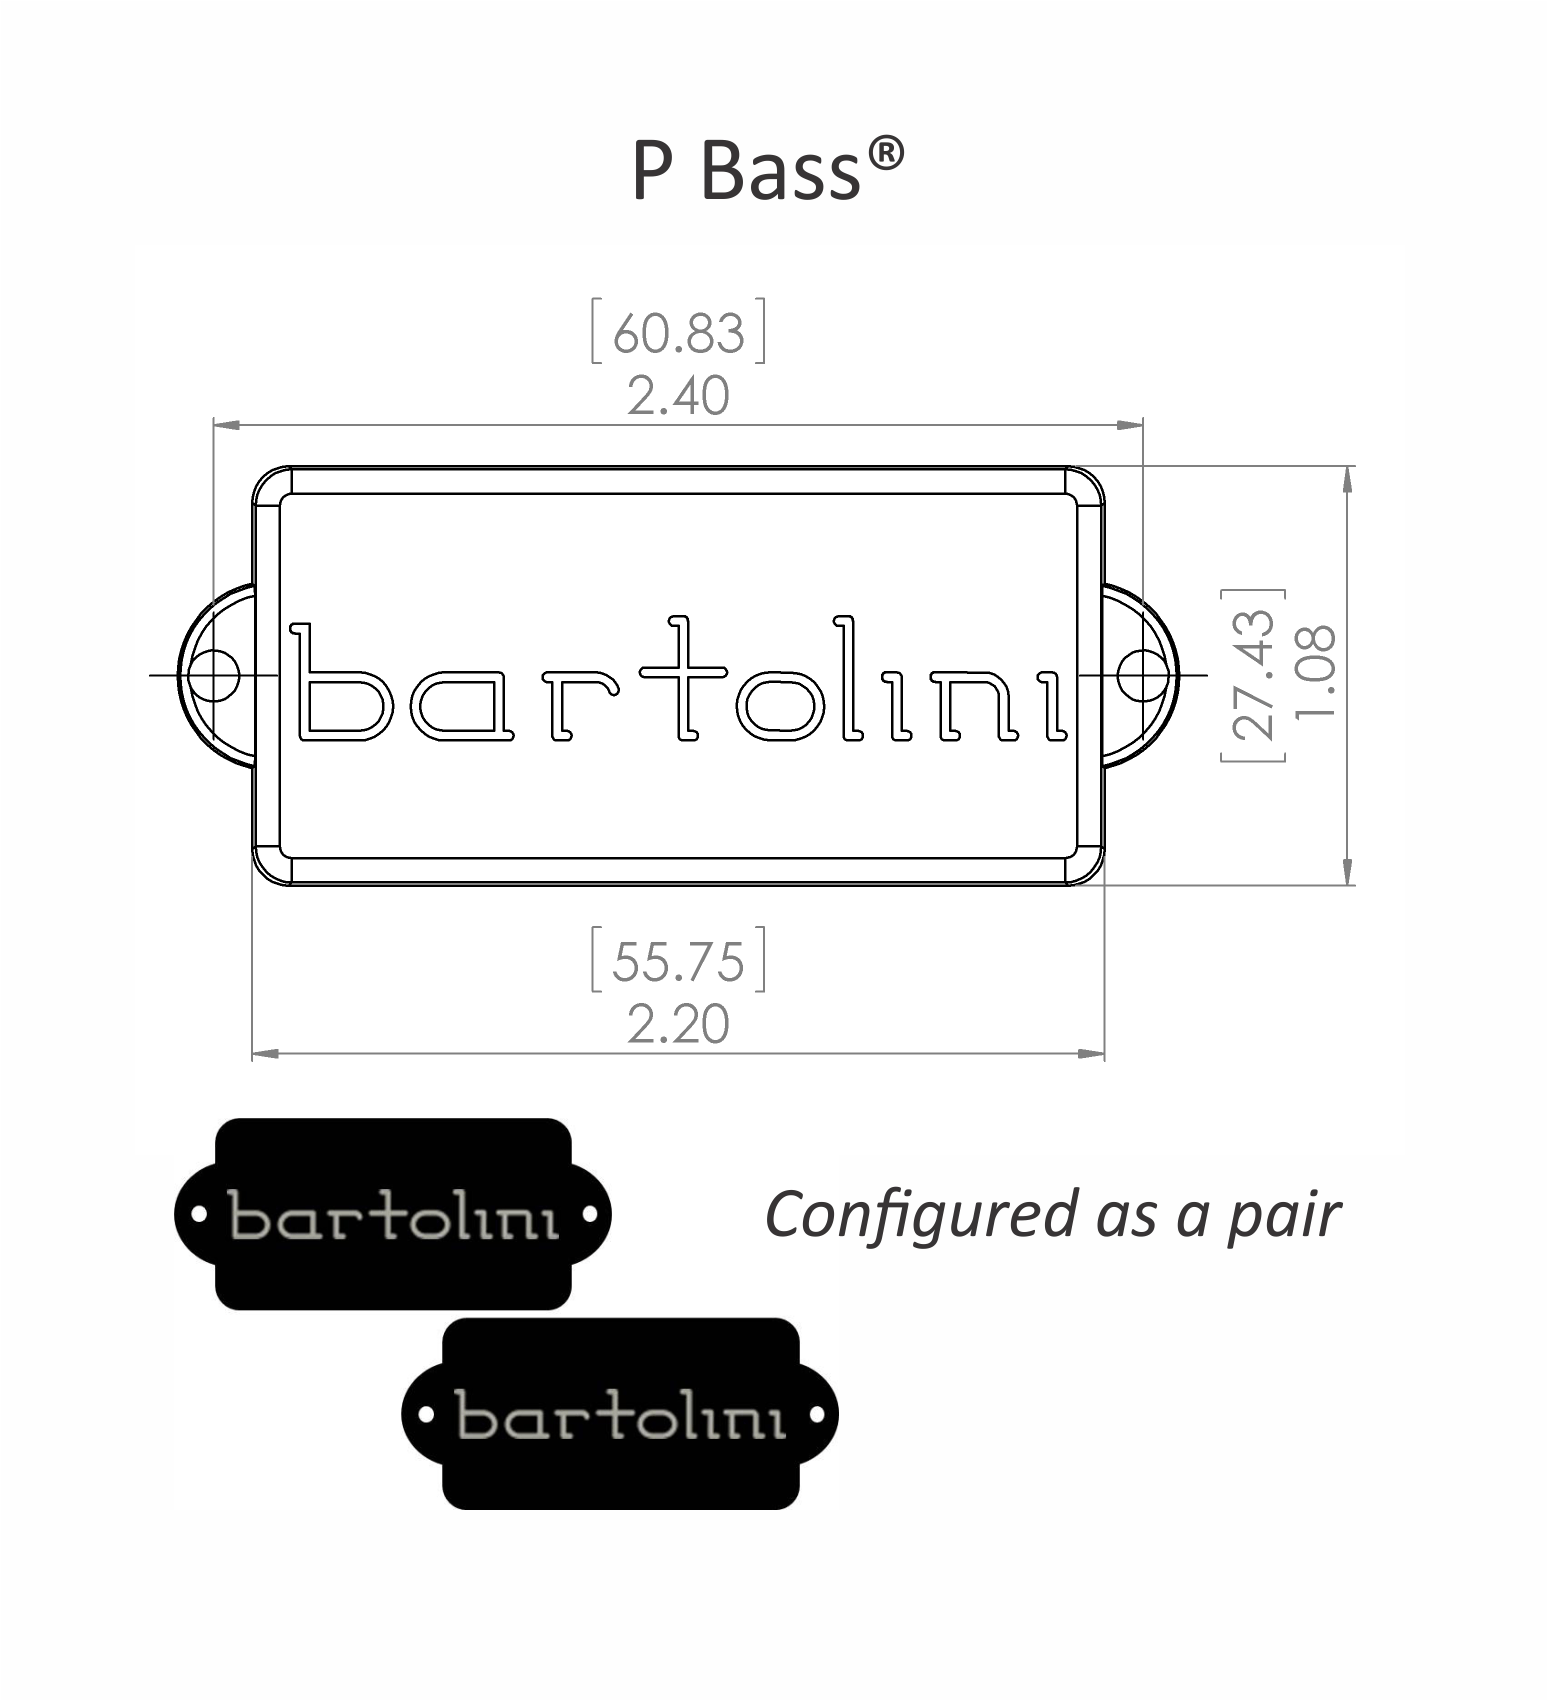 hight resolution of product dimensional drawing bartolini precision size deep tone humcancelling neck